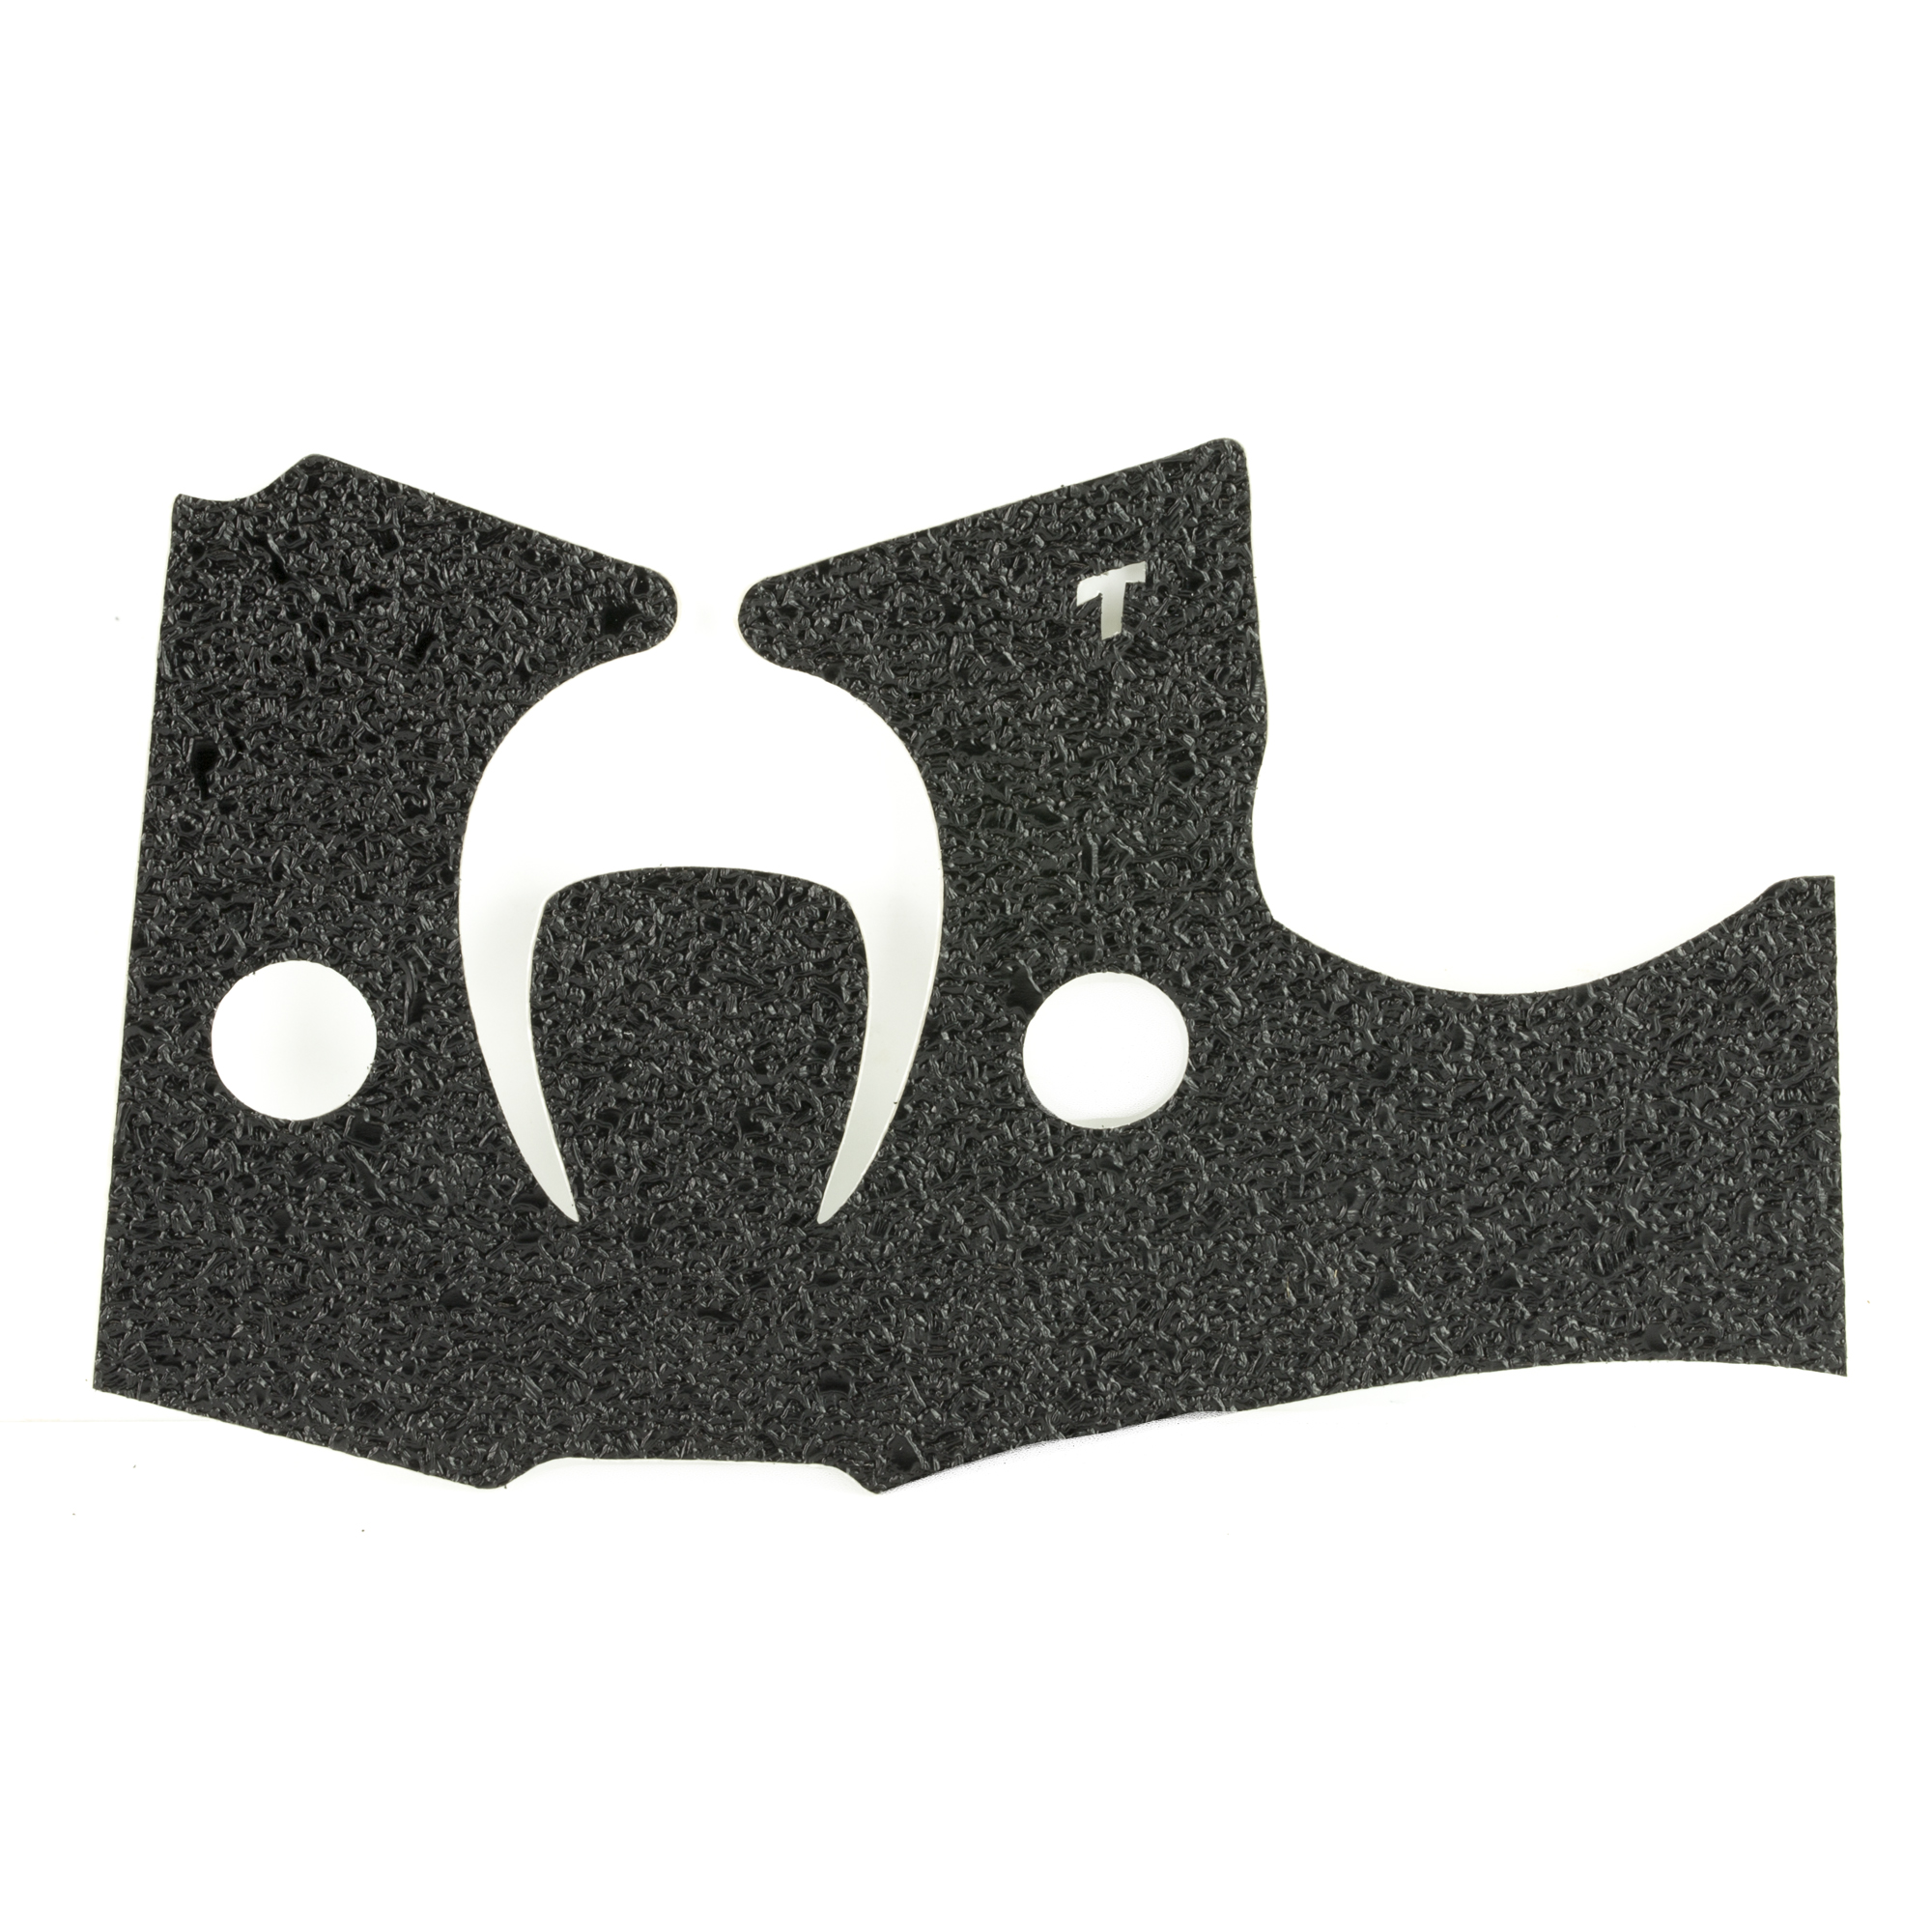 """TALON Grips for Kahr CM9"""" CM40"""" PM9 and PM40 models. This rear wrap grip is in the rubber texture and offers full side panel coverage including the thumb rest area"""" full coverage under the trigger guard"""" and high coverage on the backstrap. This grip has graphic cut outs on each side around the Kahr emblem. This grip helps with the aggressive stippling common on Kahr firearms."""